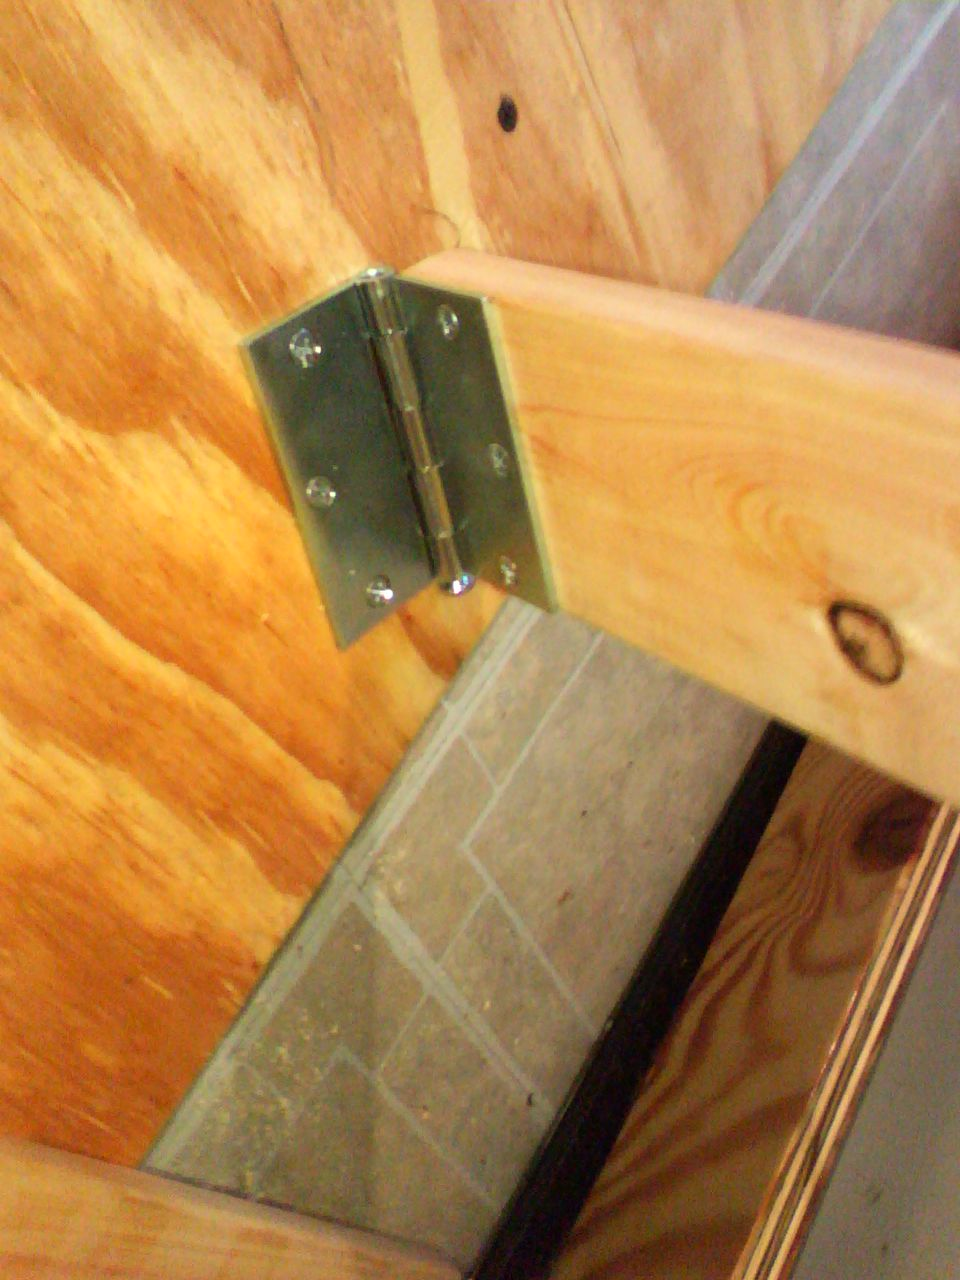 22%20Construction%20Panel%20Angle%20Bottom%20Hinge%20Detail